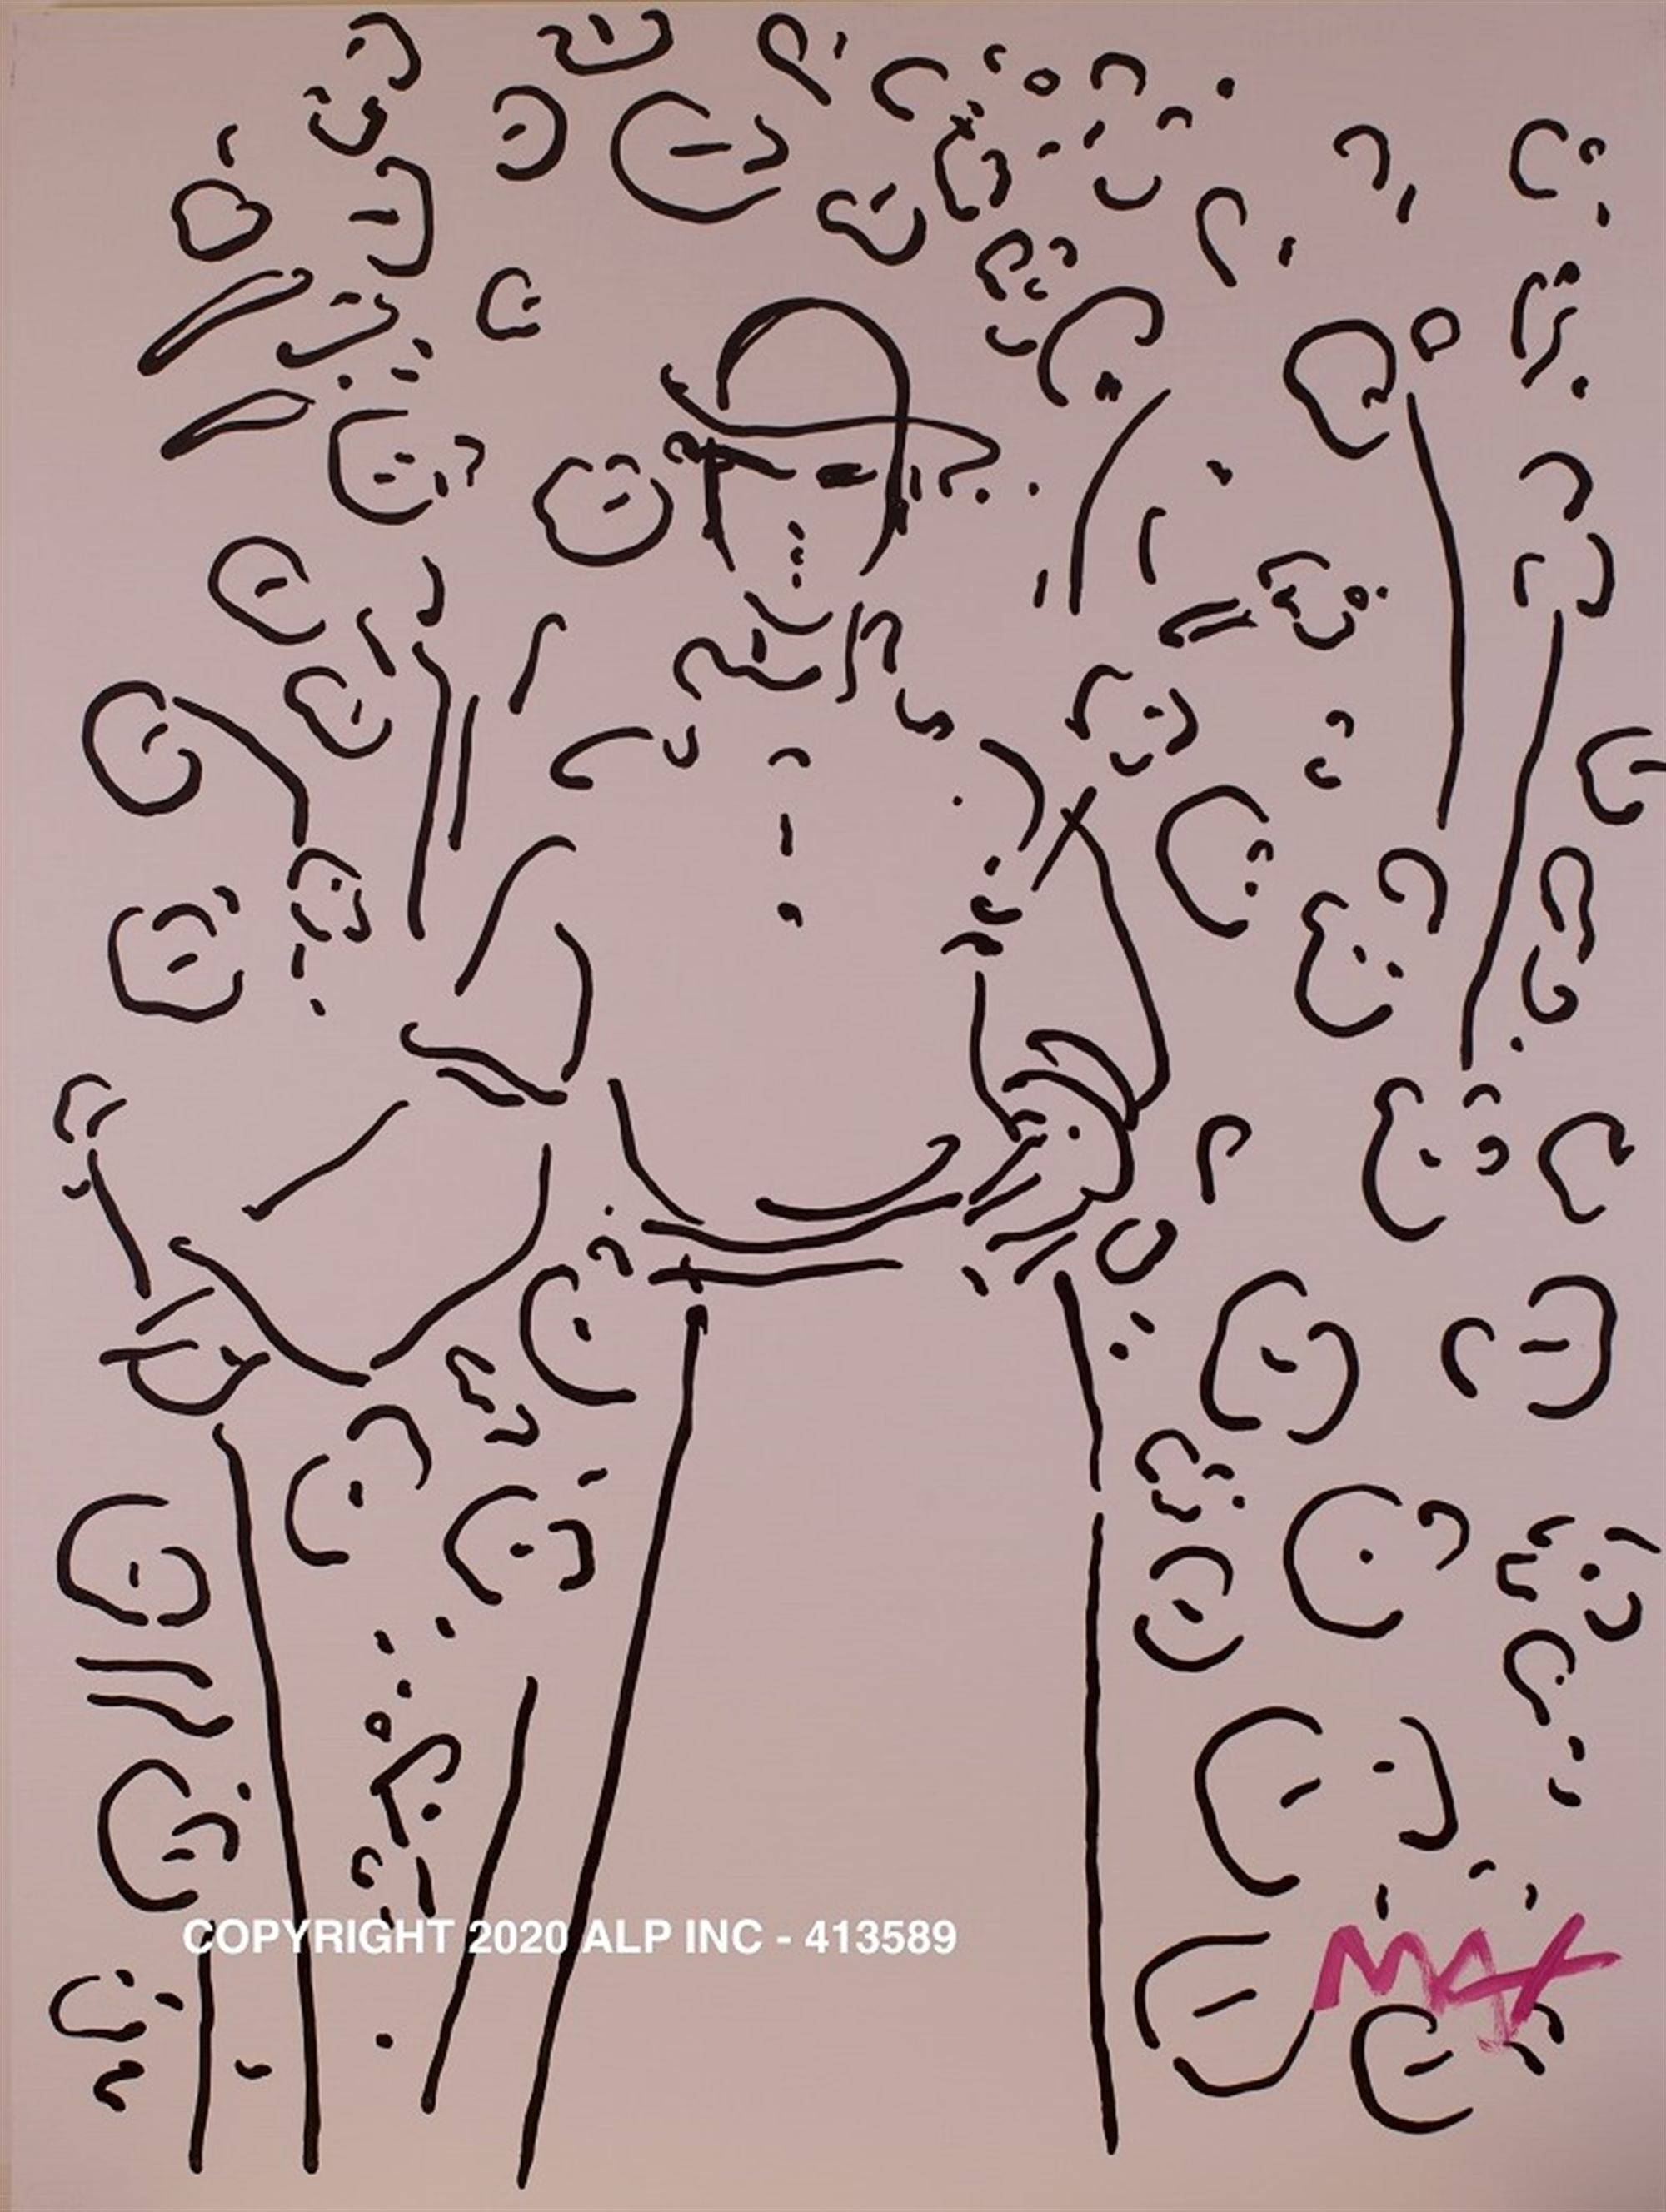 Monk in a Garden II Ver. I #1- Vintage Collection by Peter Max